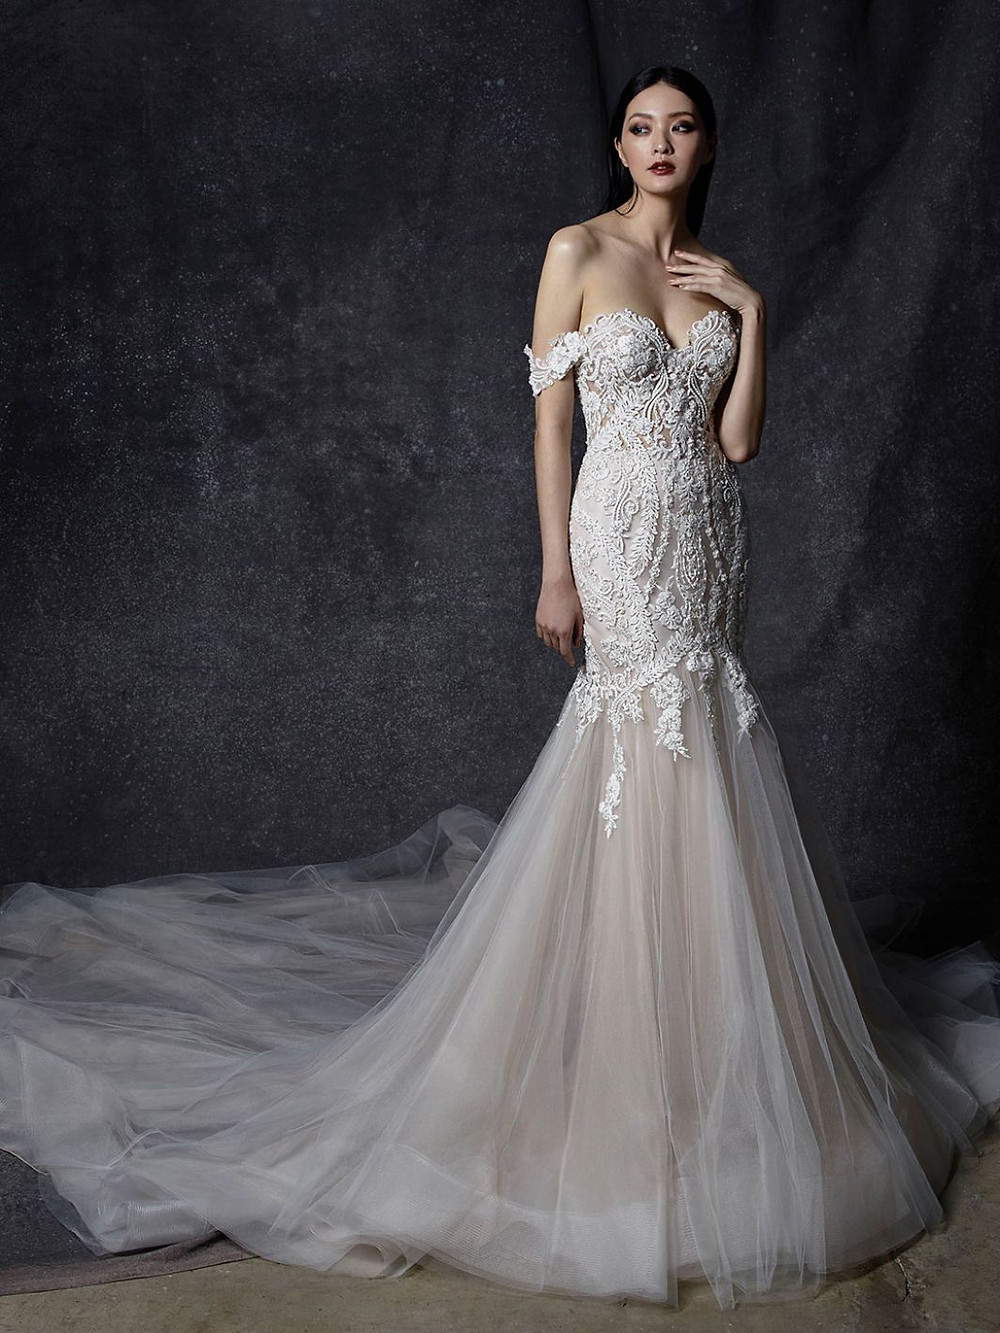 An Enzoani off the shoulder lace wedding dress with a tulle skirt and a sweetheart neckline